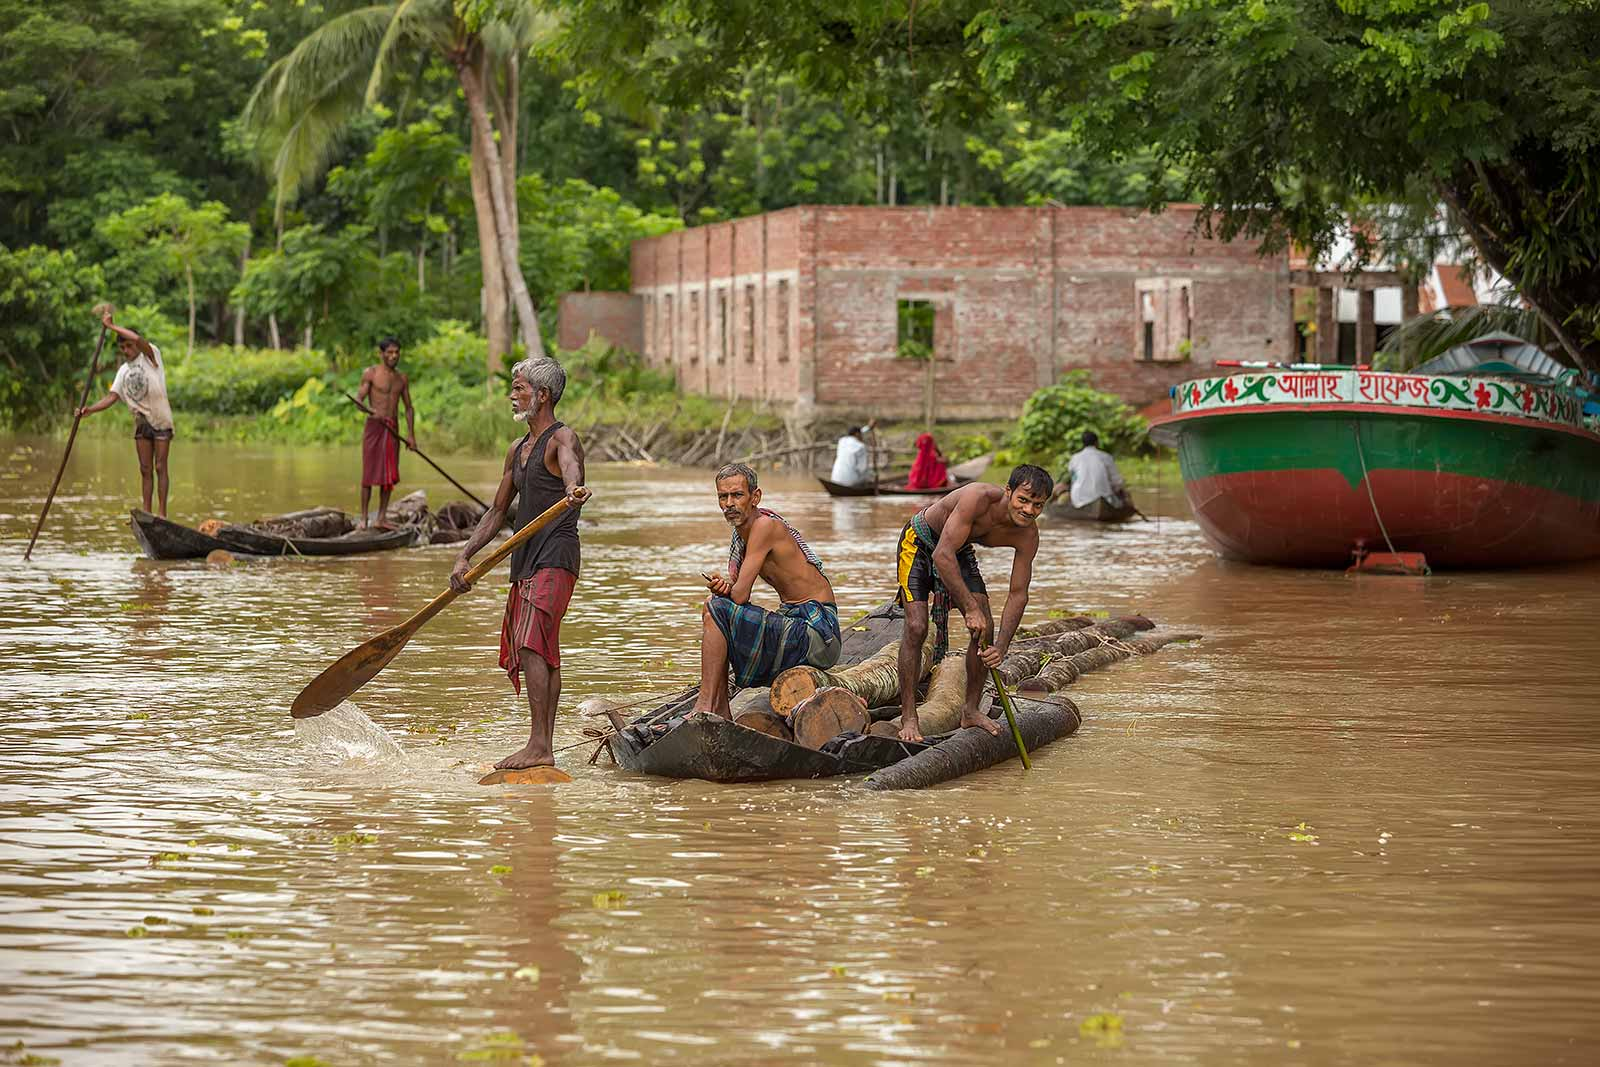 wood-workers-river-galachipa-bangladesh-2